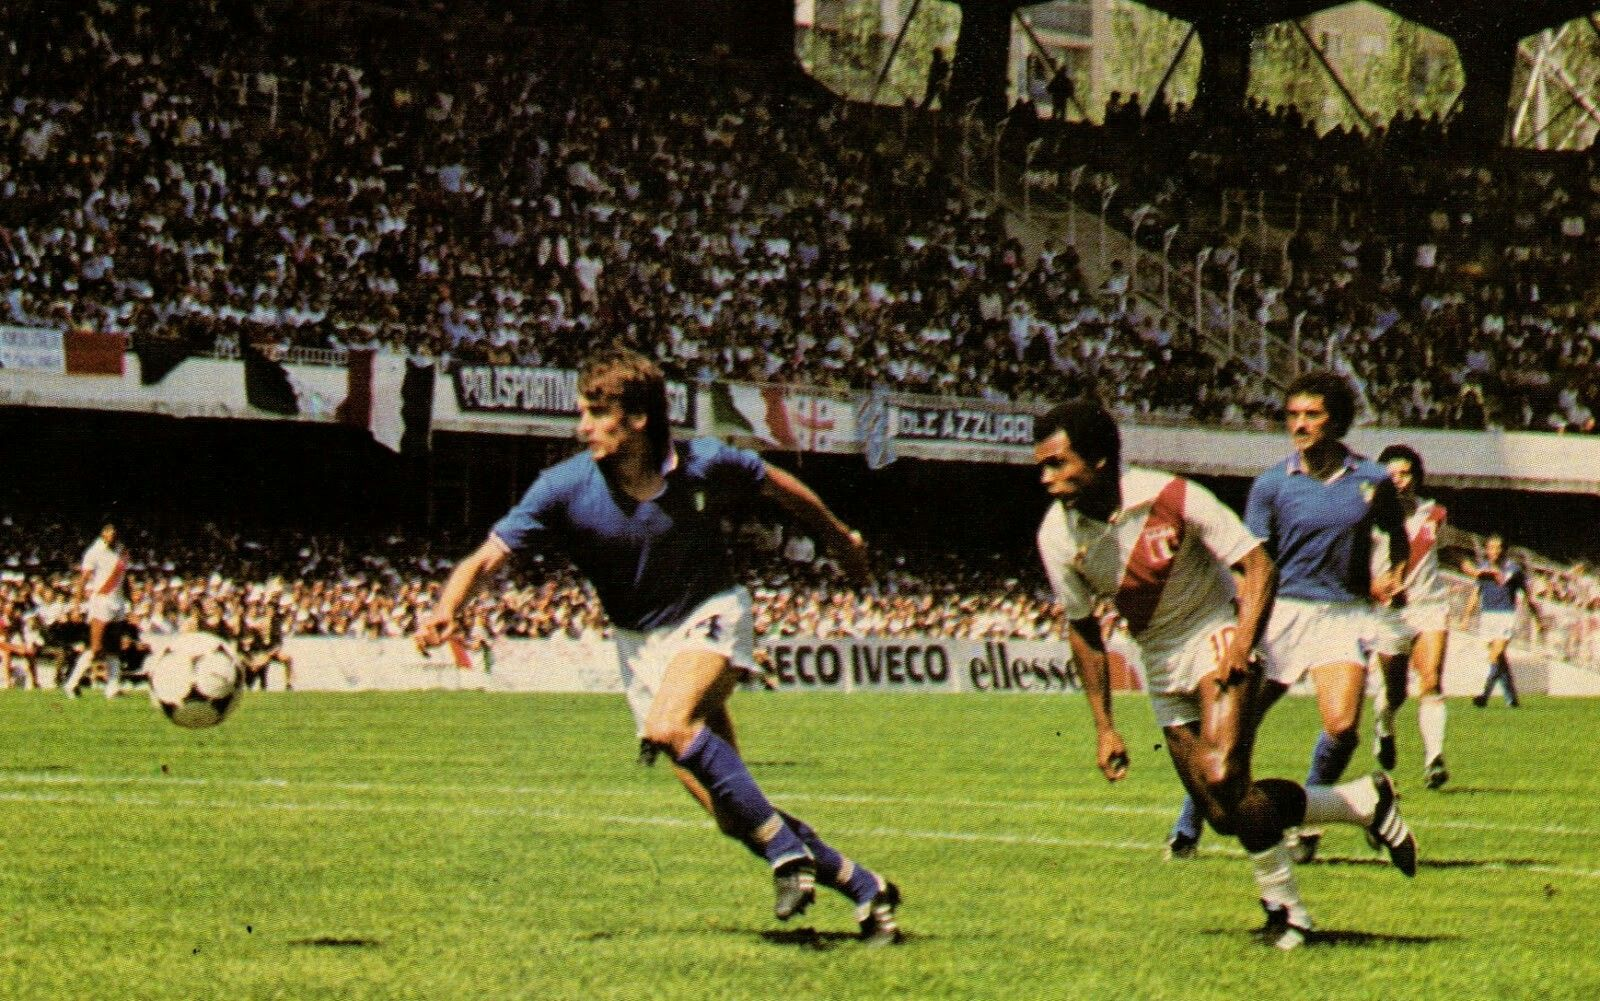 Italy 1 Peru 1 in 1982 in Vigo. Teofilo Cubillas and Giancarlo ...